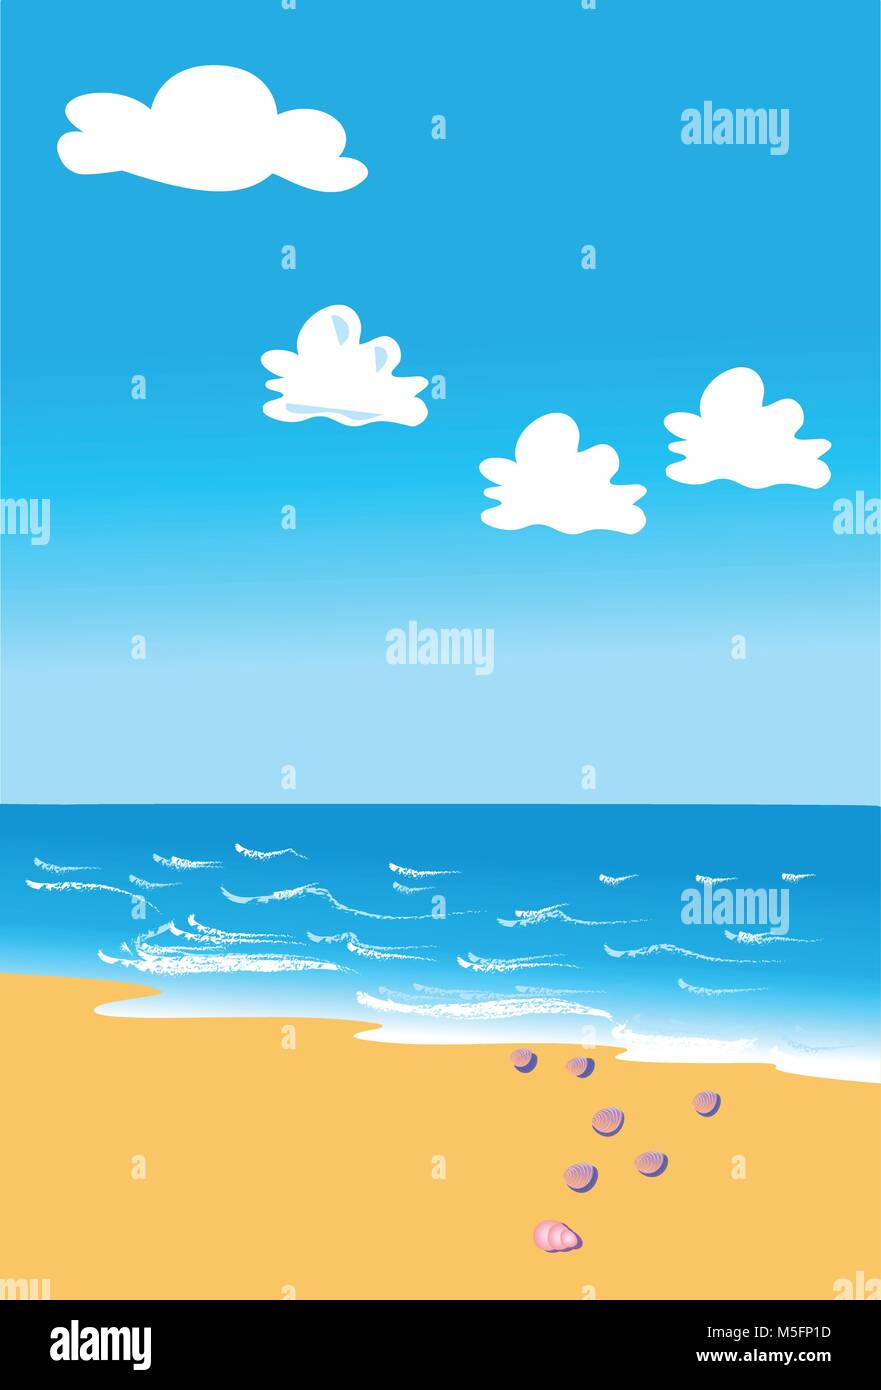 A tranquill beach scene with gentle waves, a blue sky with fluffy white clouds and a scattering of sea shells - Stock Vector